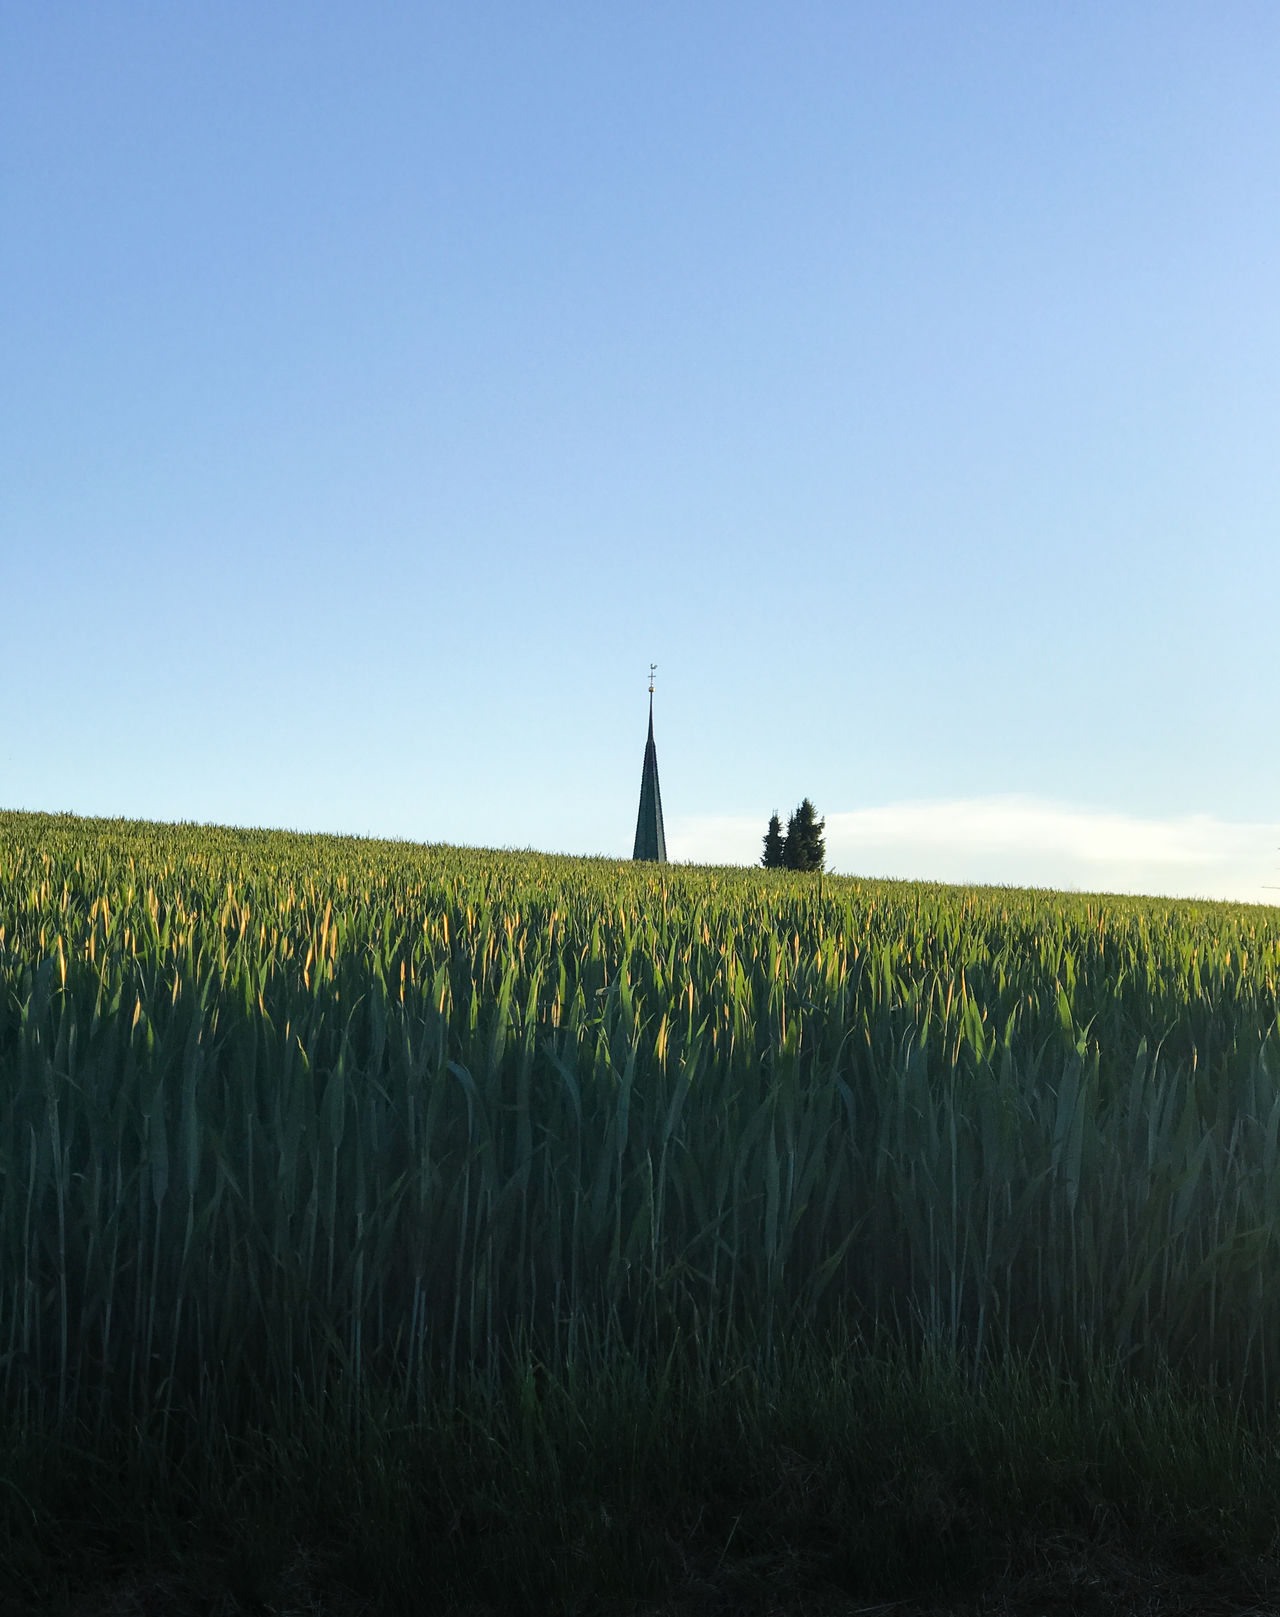 Agriculture Beauty In Nature Cereal Plant Church Church Tower Clear Sky Crop  Field Grass Growth Landscape Landscape_Collection Landscape_photography Landscapes Minimal Minimalism Minimalobsession Nature Nature Photography No People Outdoors Plant Rural Scene Sky Wheat iphone crop